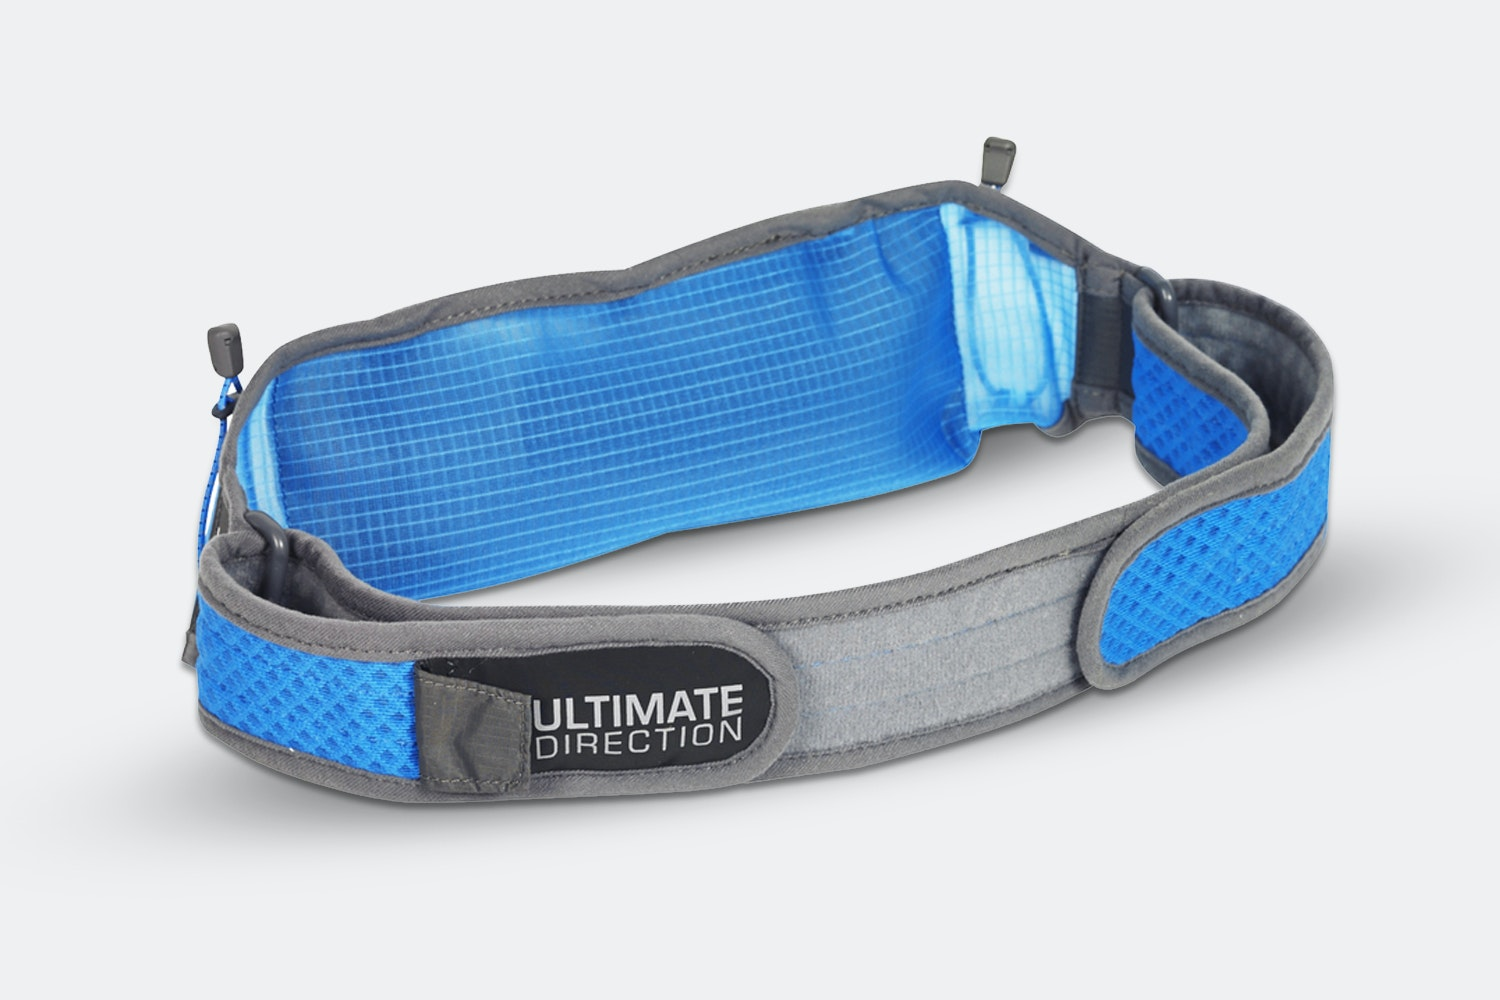 Ultimate Direction Groove Running Belts